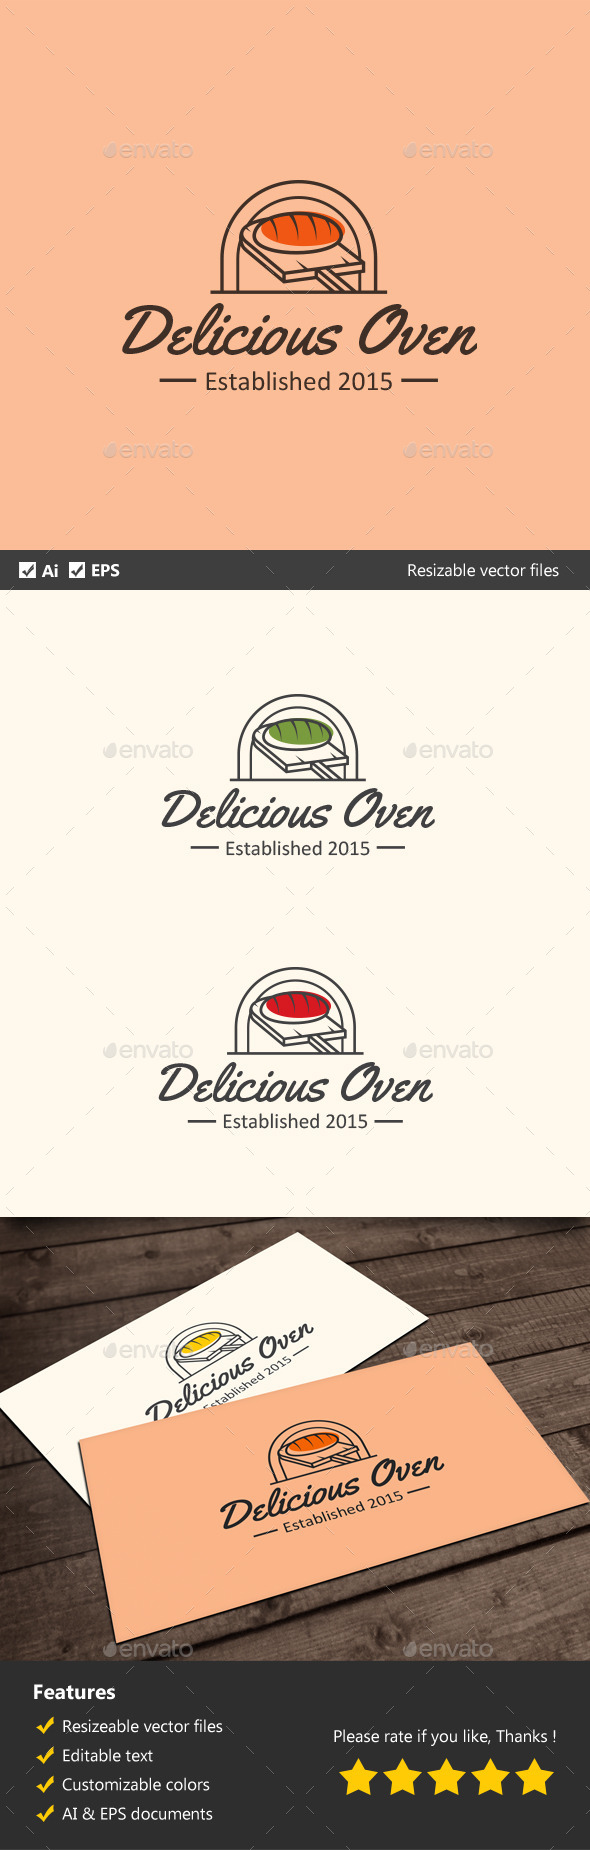 GraphicRiver Delicious Oven 11913580